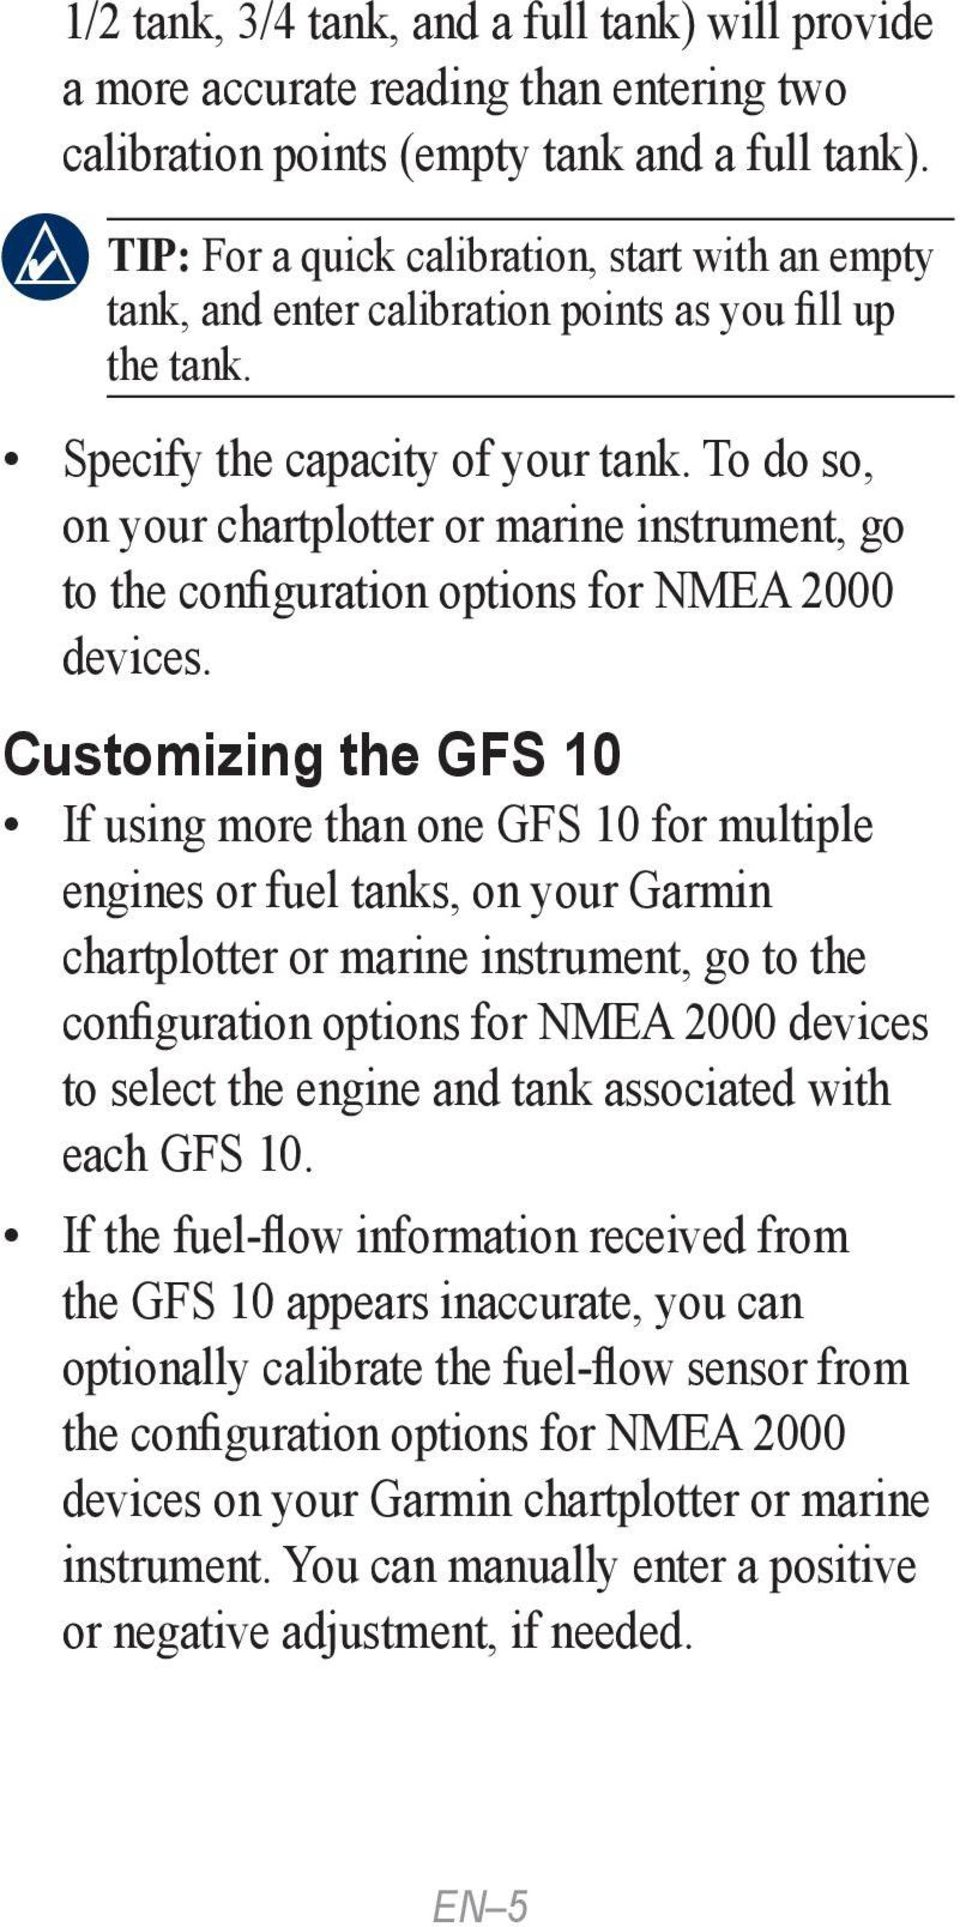 To do so, on your chartplotter or marine instrument, go to the configuration options for NMEA 2000 devices.